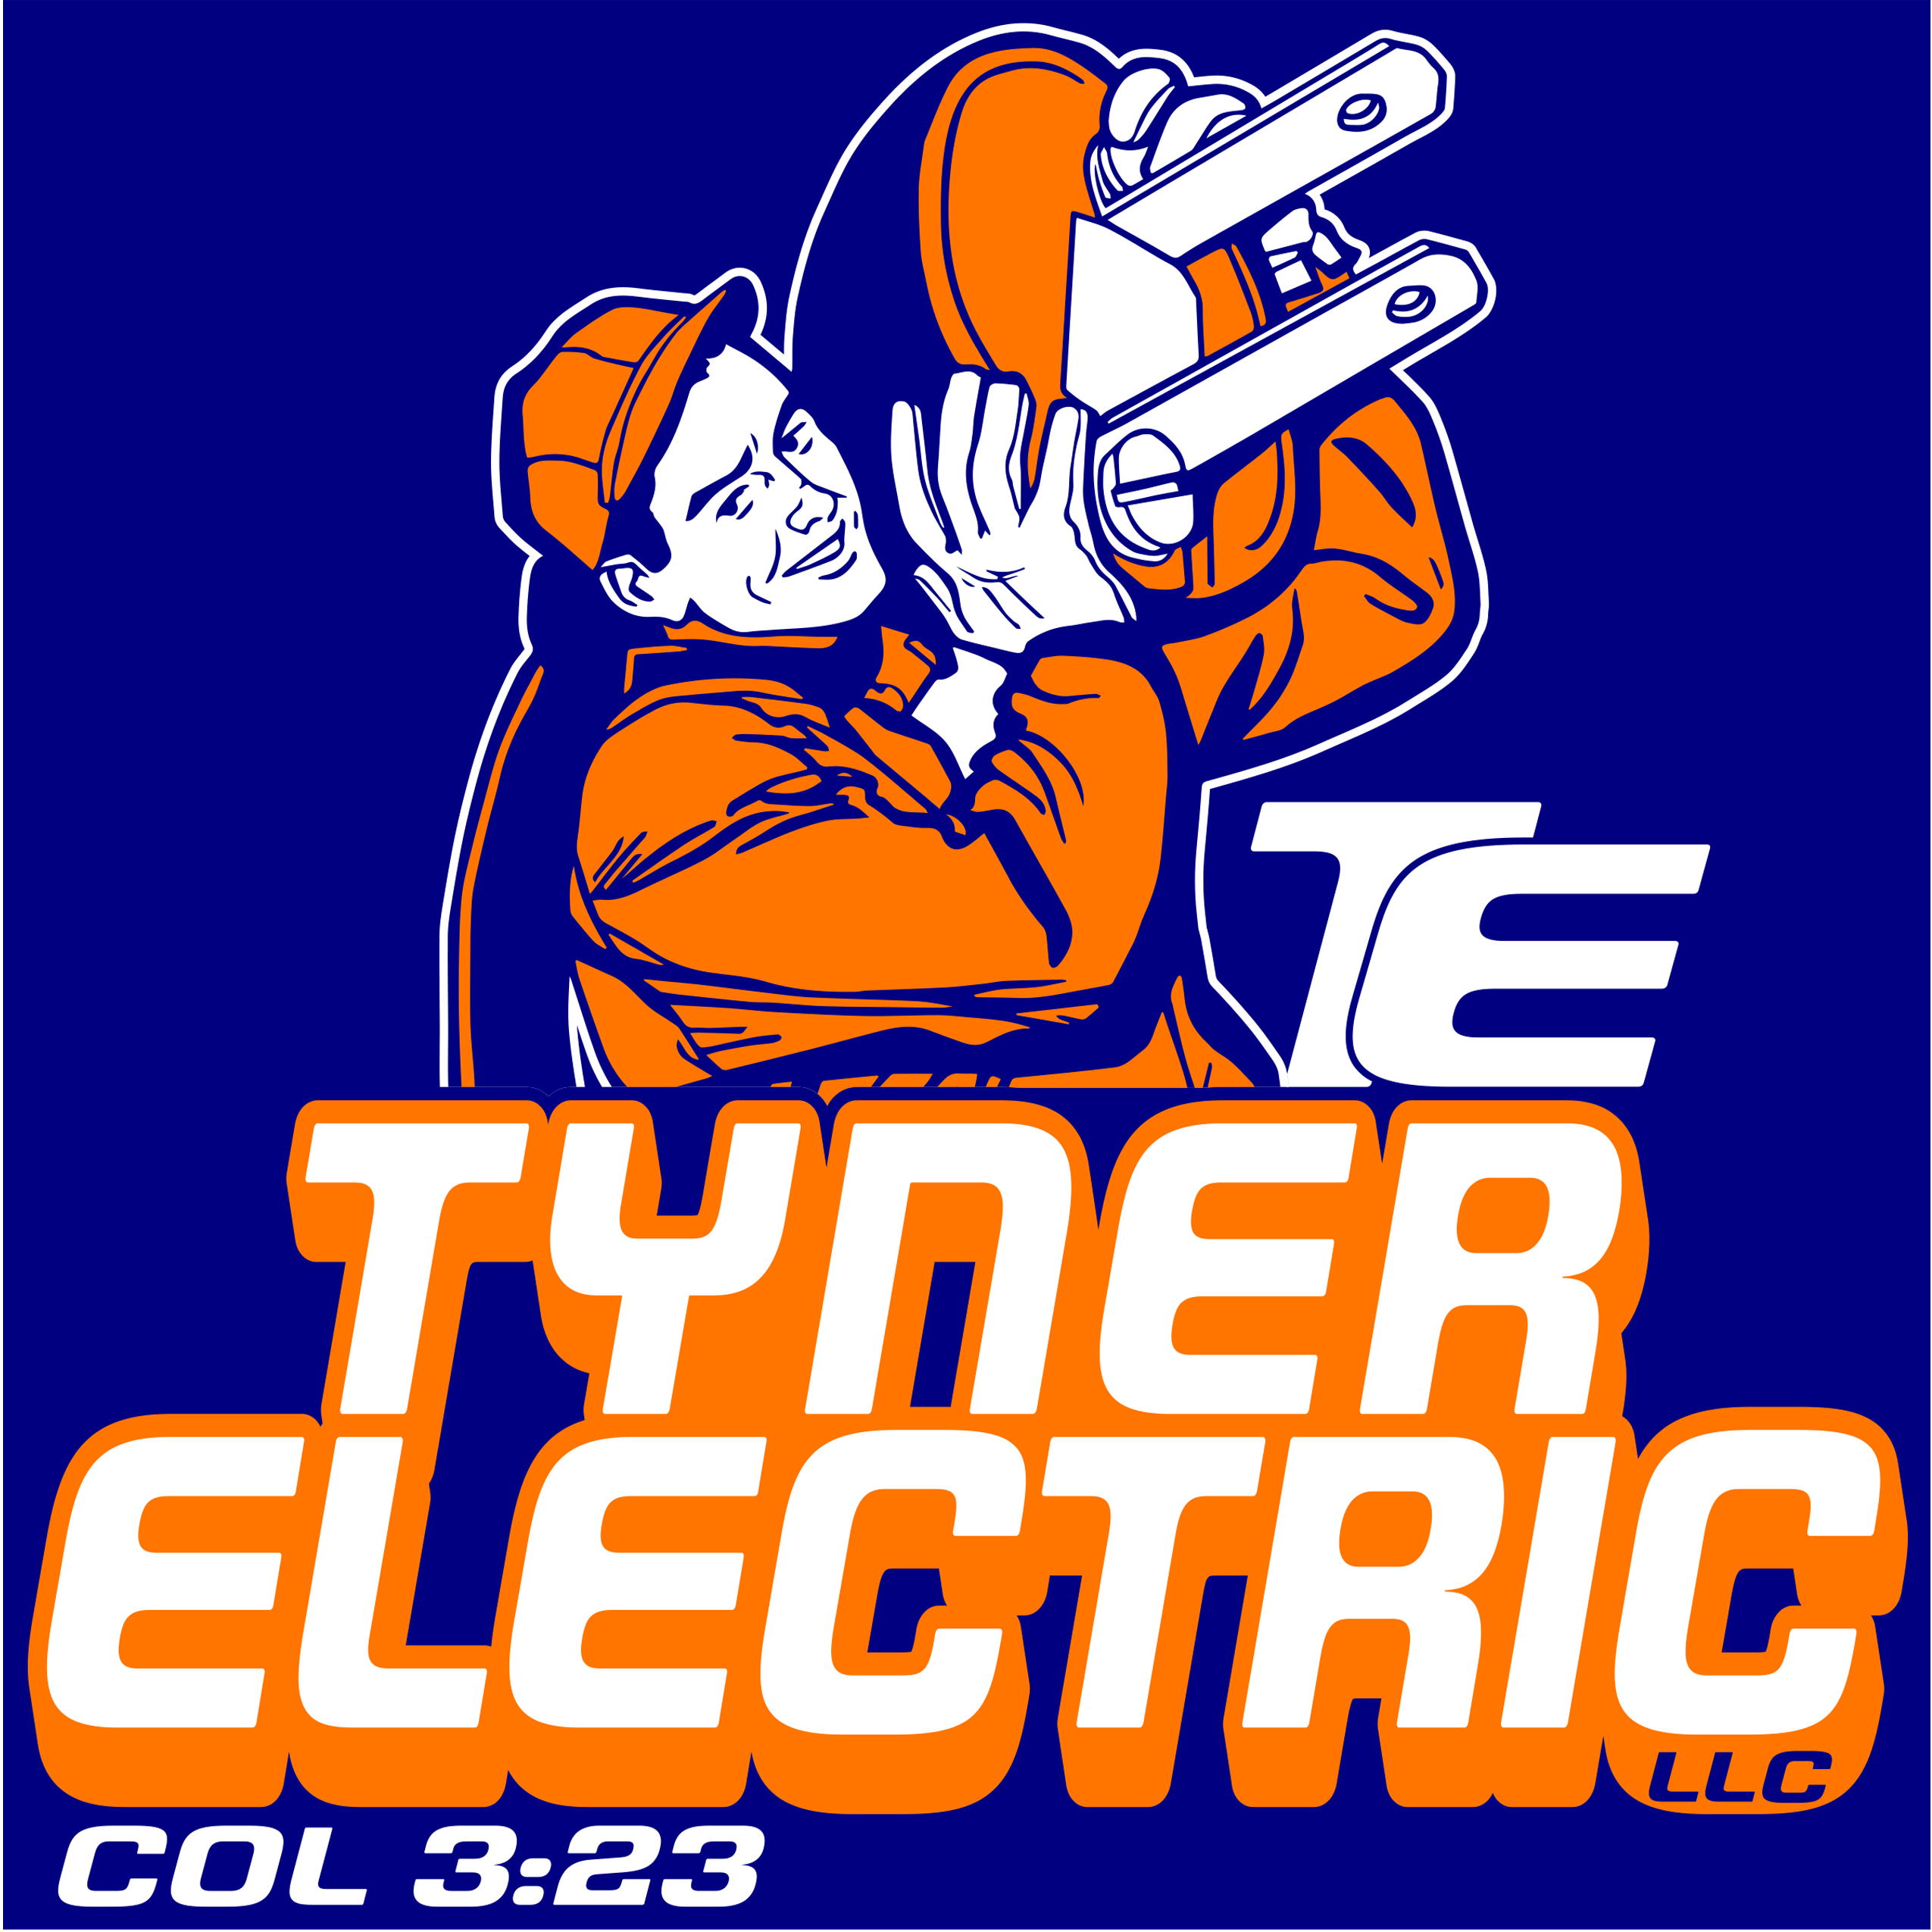 Tyner Electric LLC